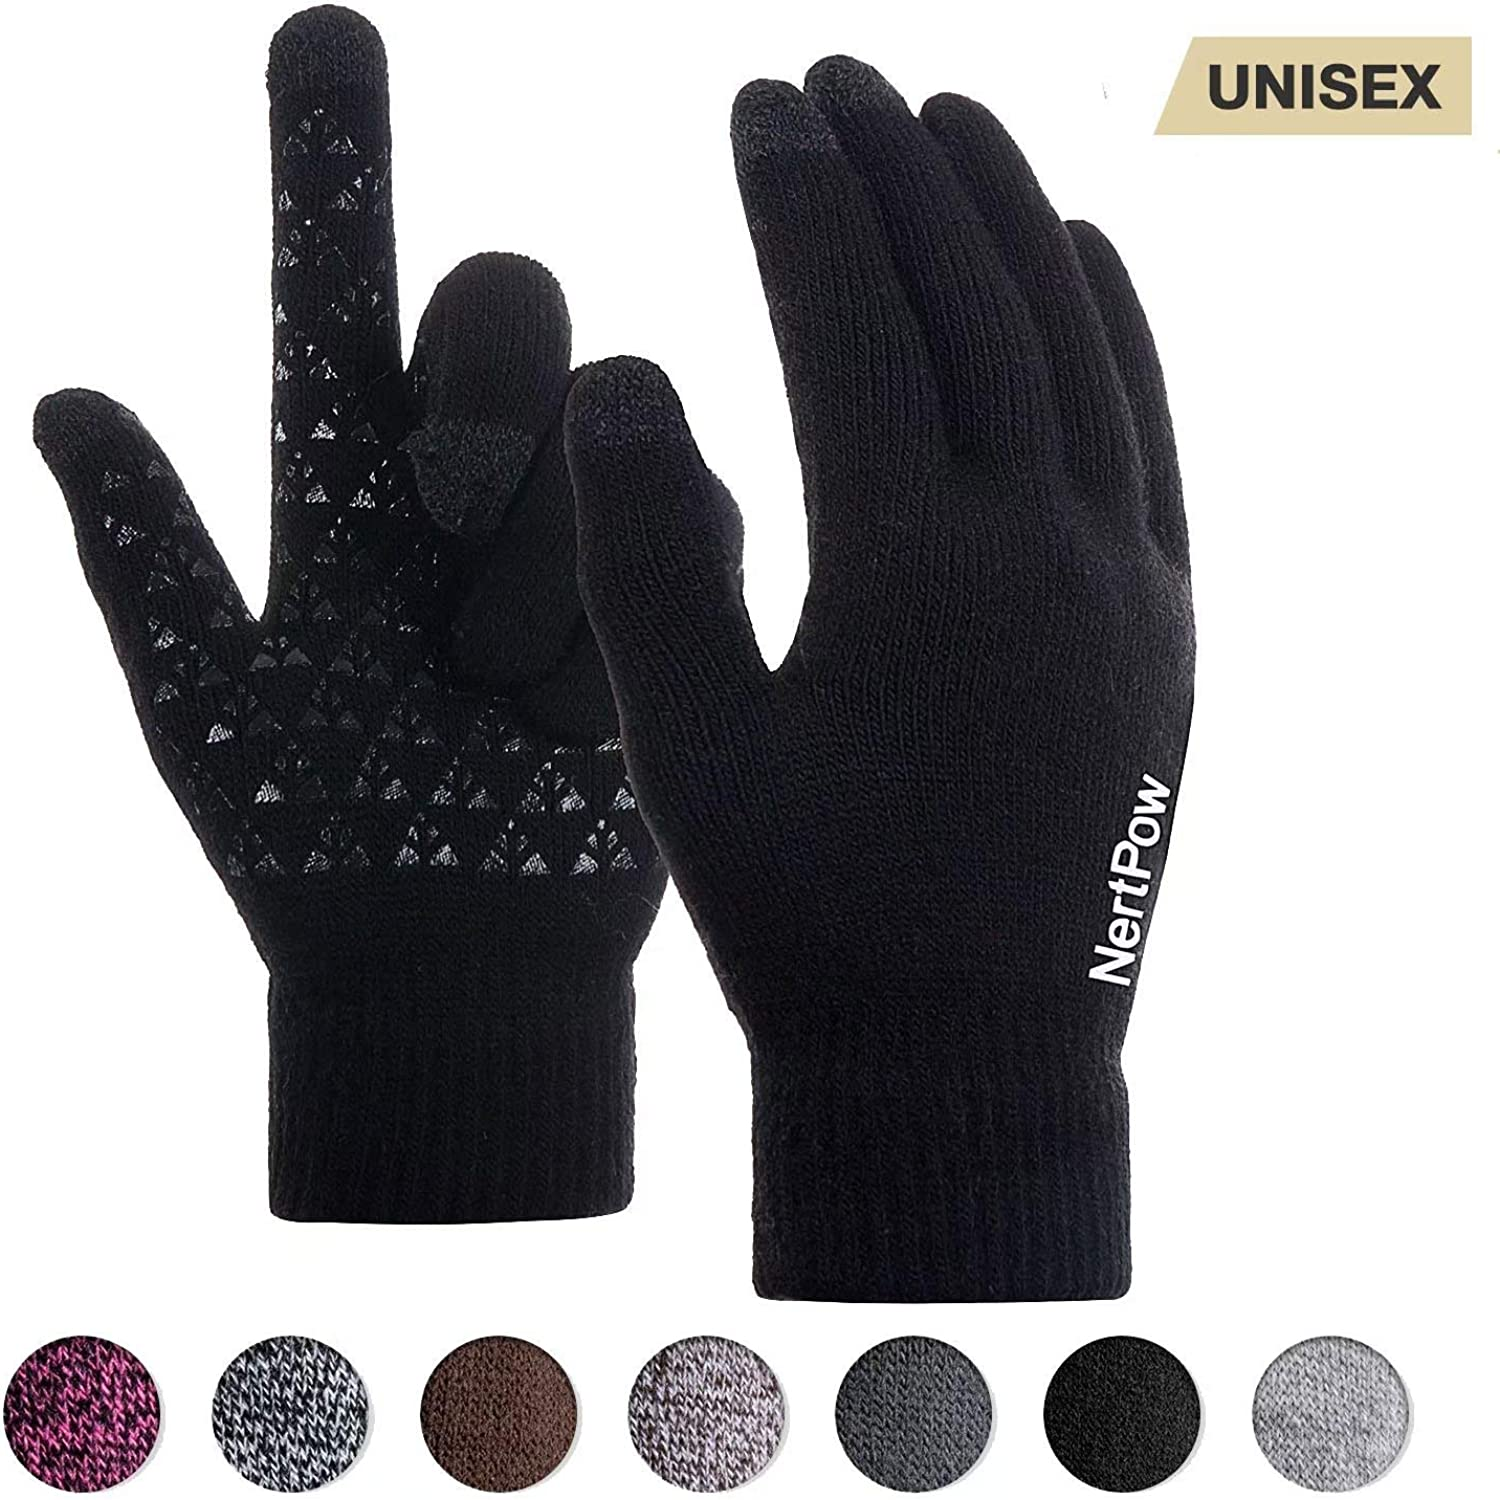 Winter Gloves For Men And Women, Warm Knit Touch Screen Texting Anti-Slip Thermal Gloves With Wool Lining (Black-L)